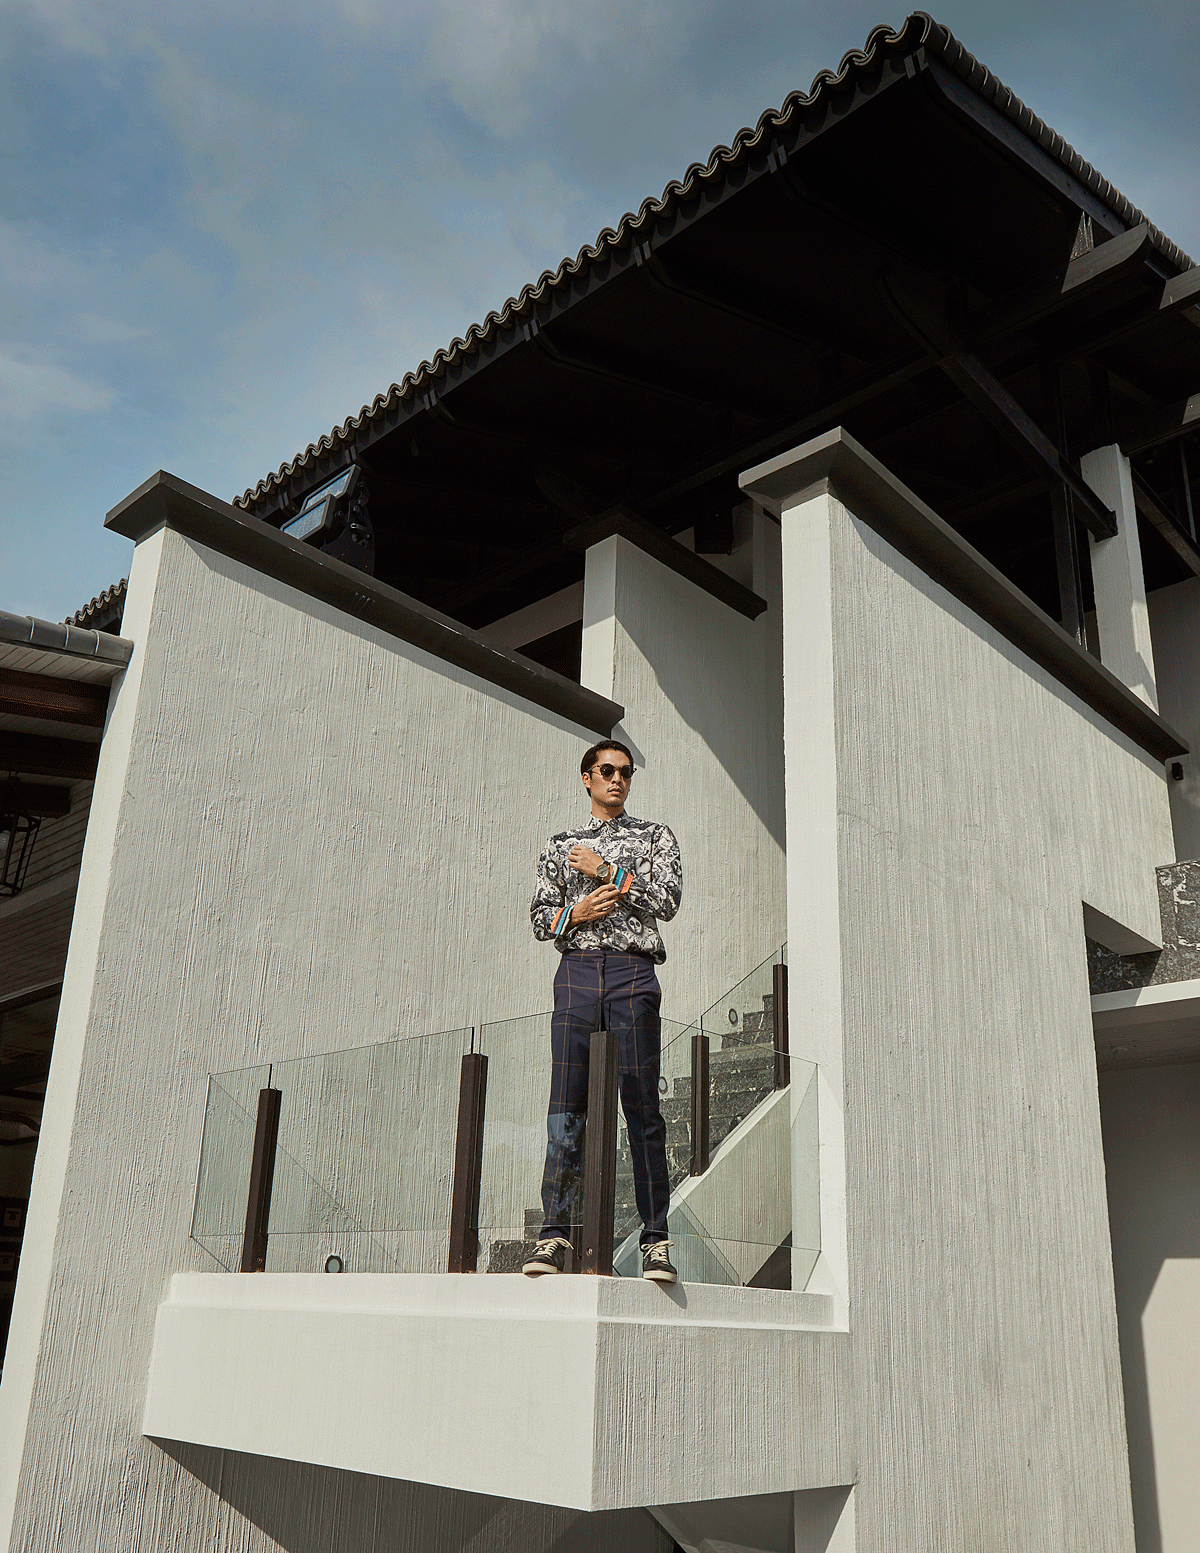 clothes : Paul Smith / shoes : Christian Louboutin / sunglasses : TAVAT